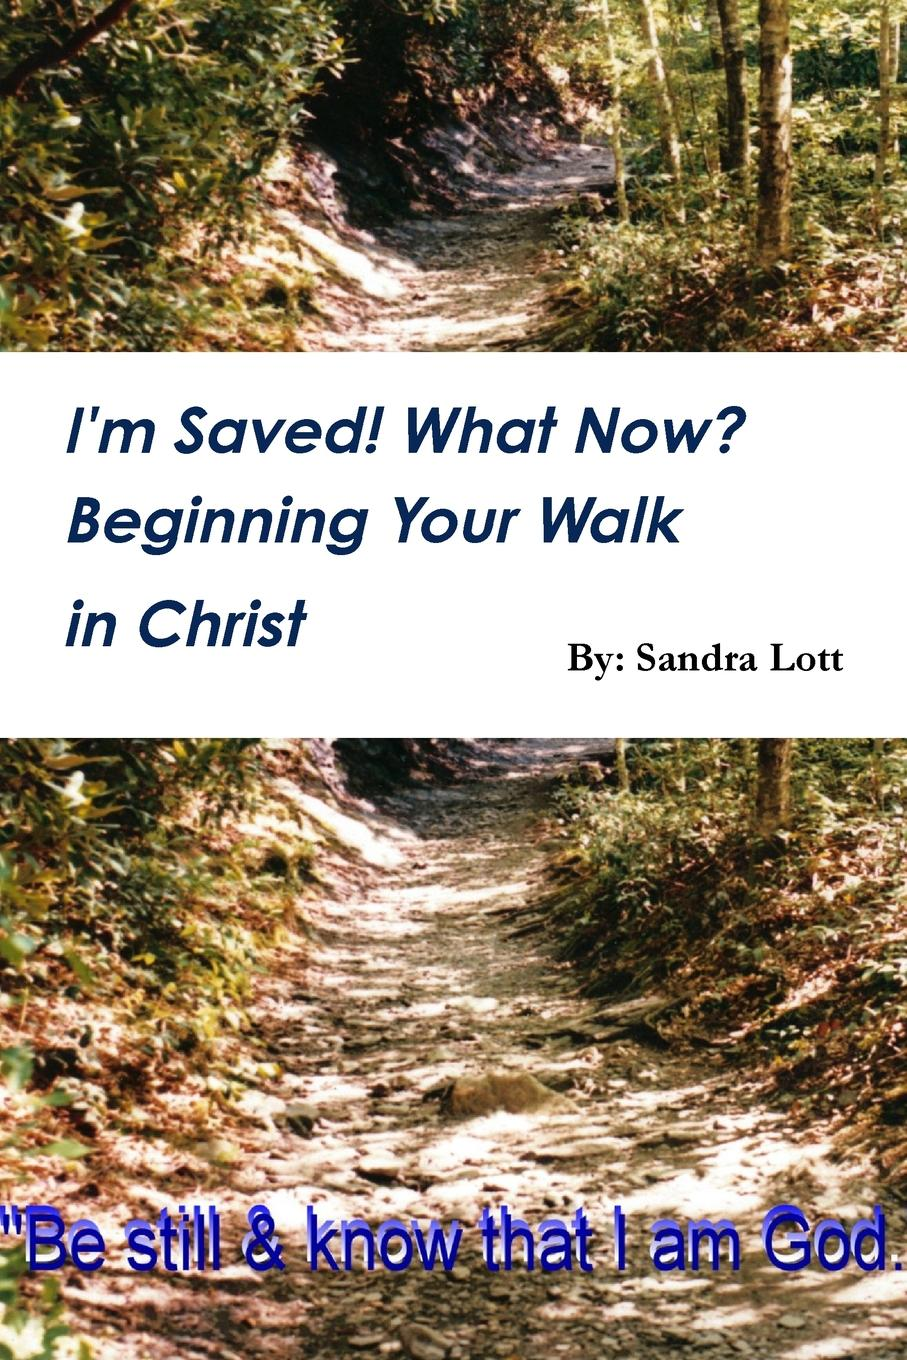 Sandra Lott I.m Saved. What Now. Beginning Your Walk in Christ larry f wolf policing peace what america can do now to avoid future tragedies